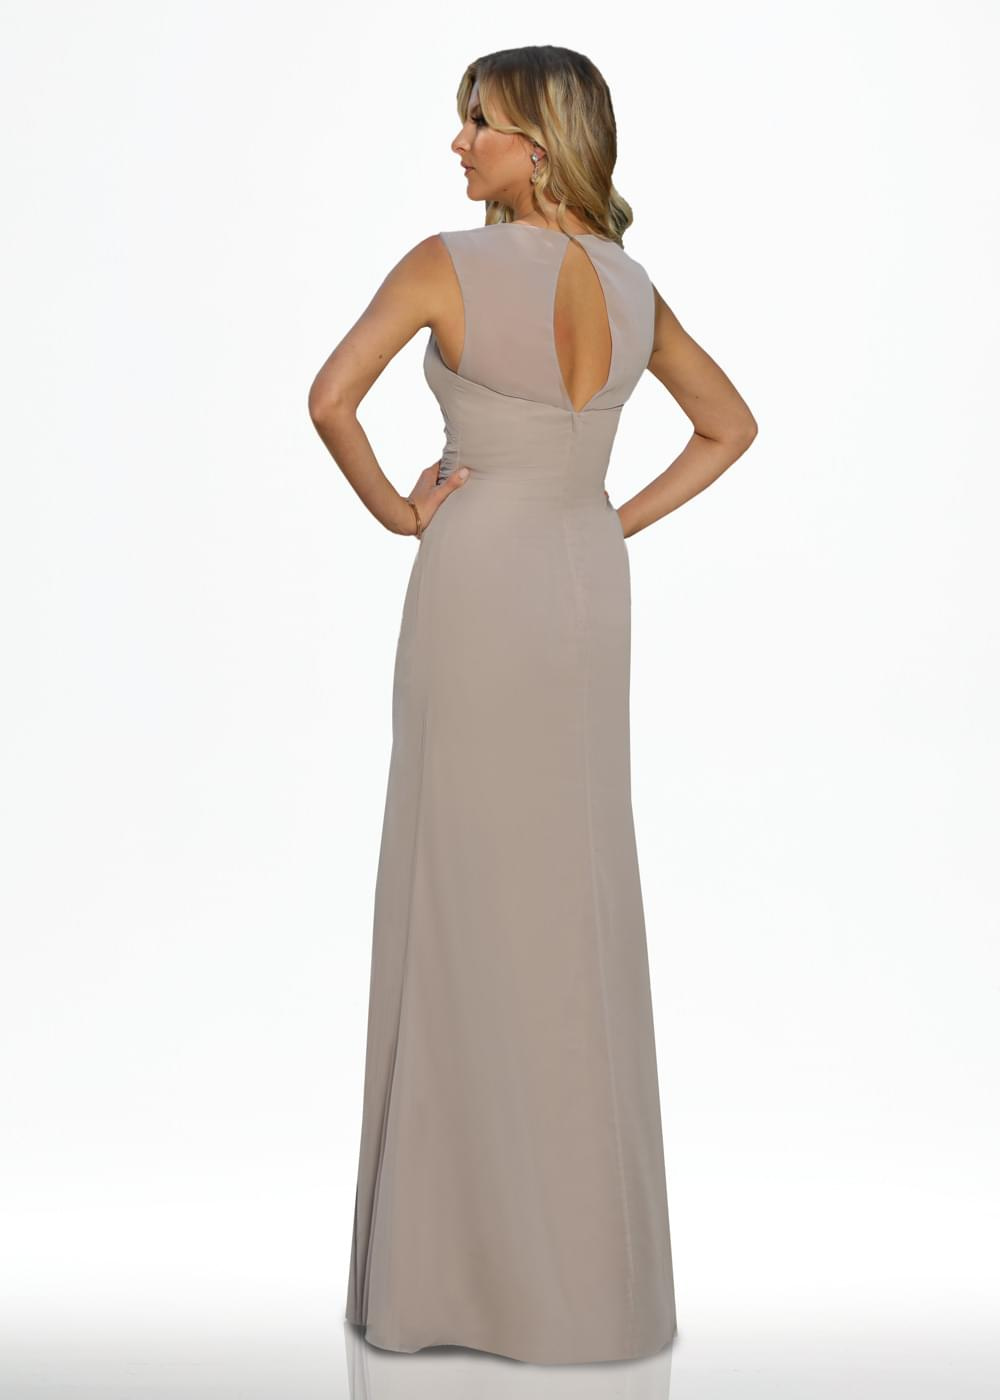 80048 Dresses with Straps By Ashdon